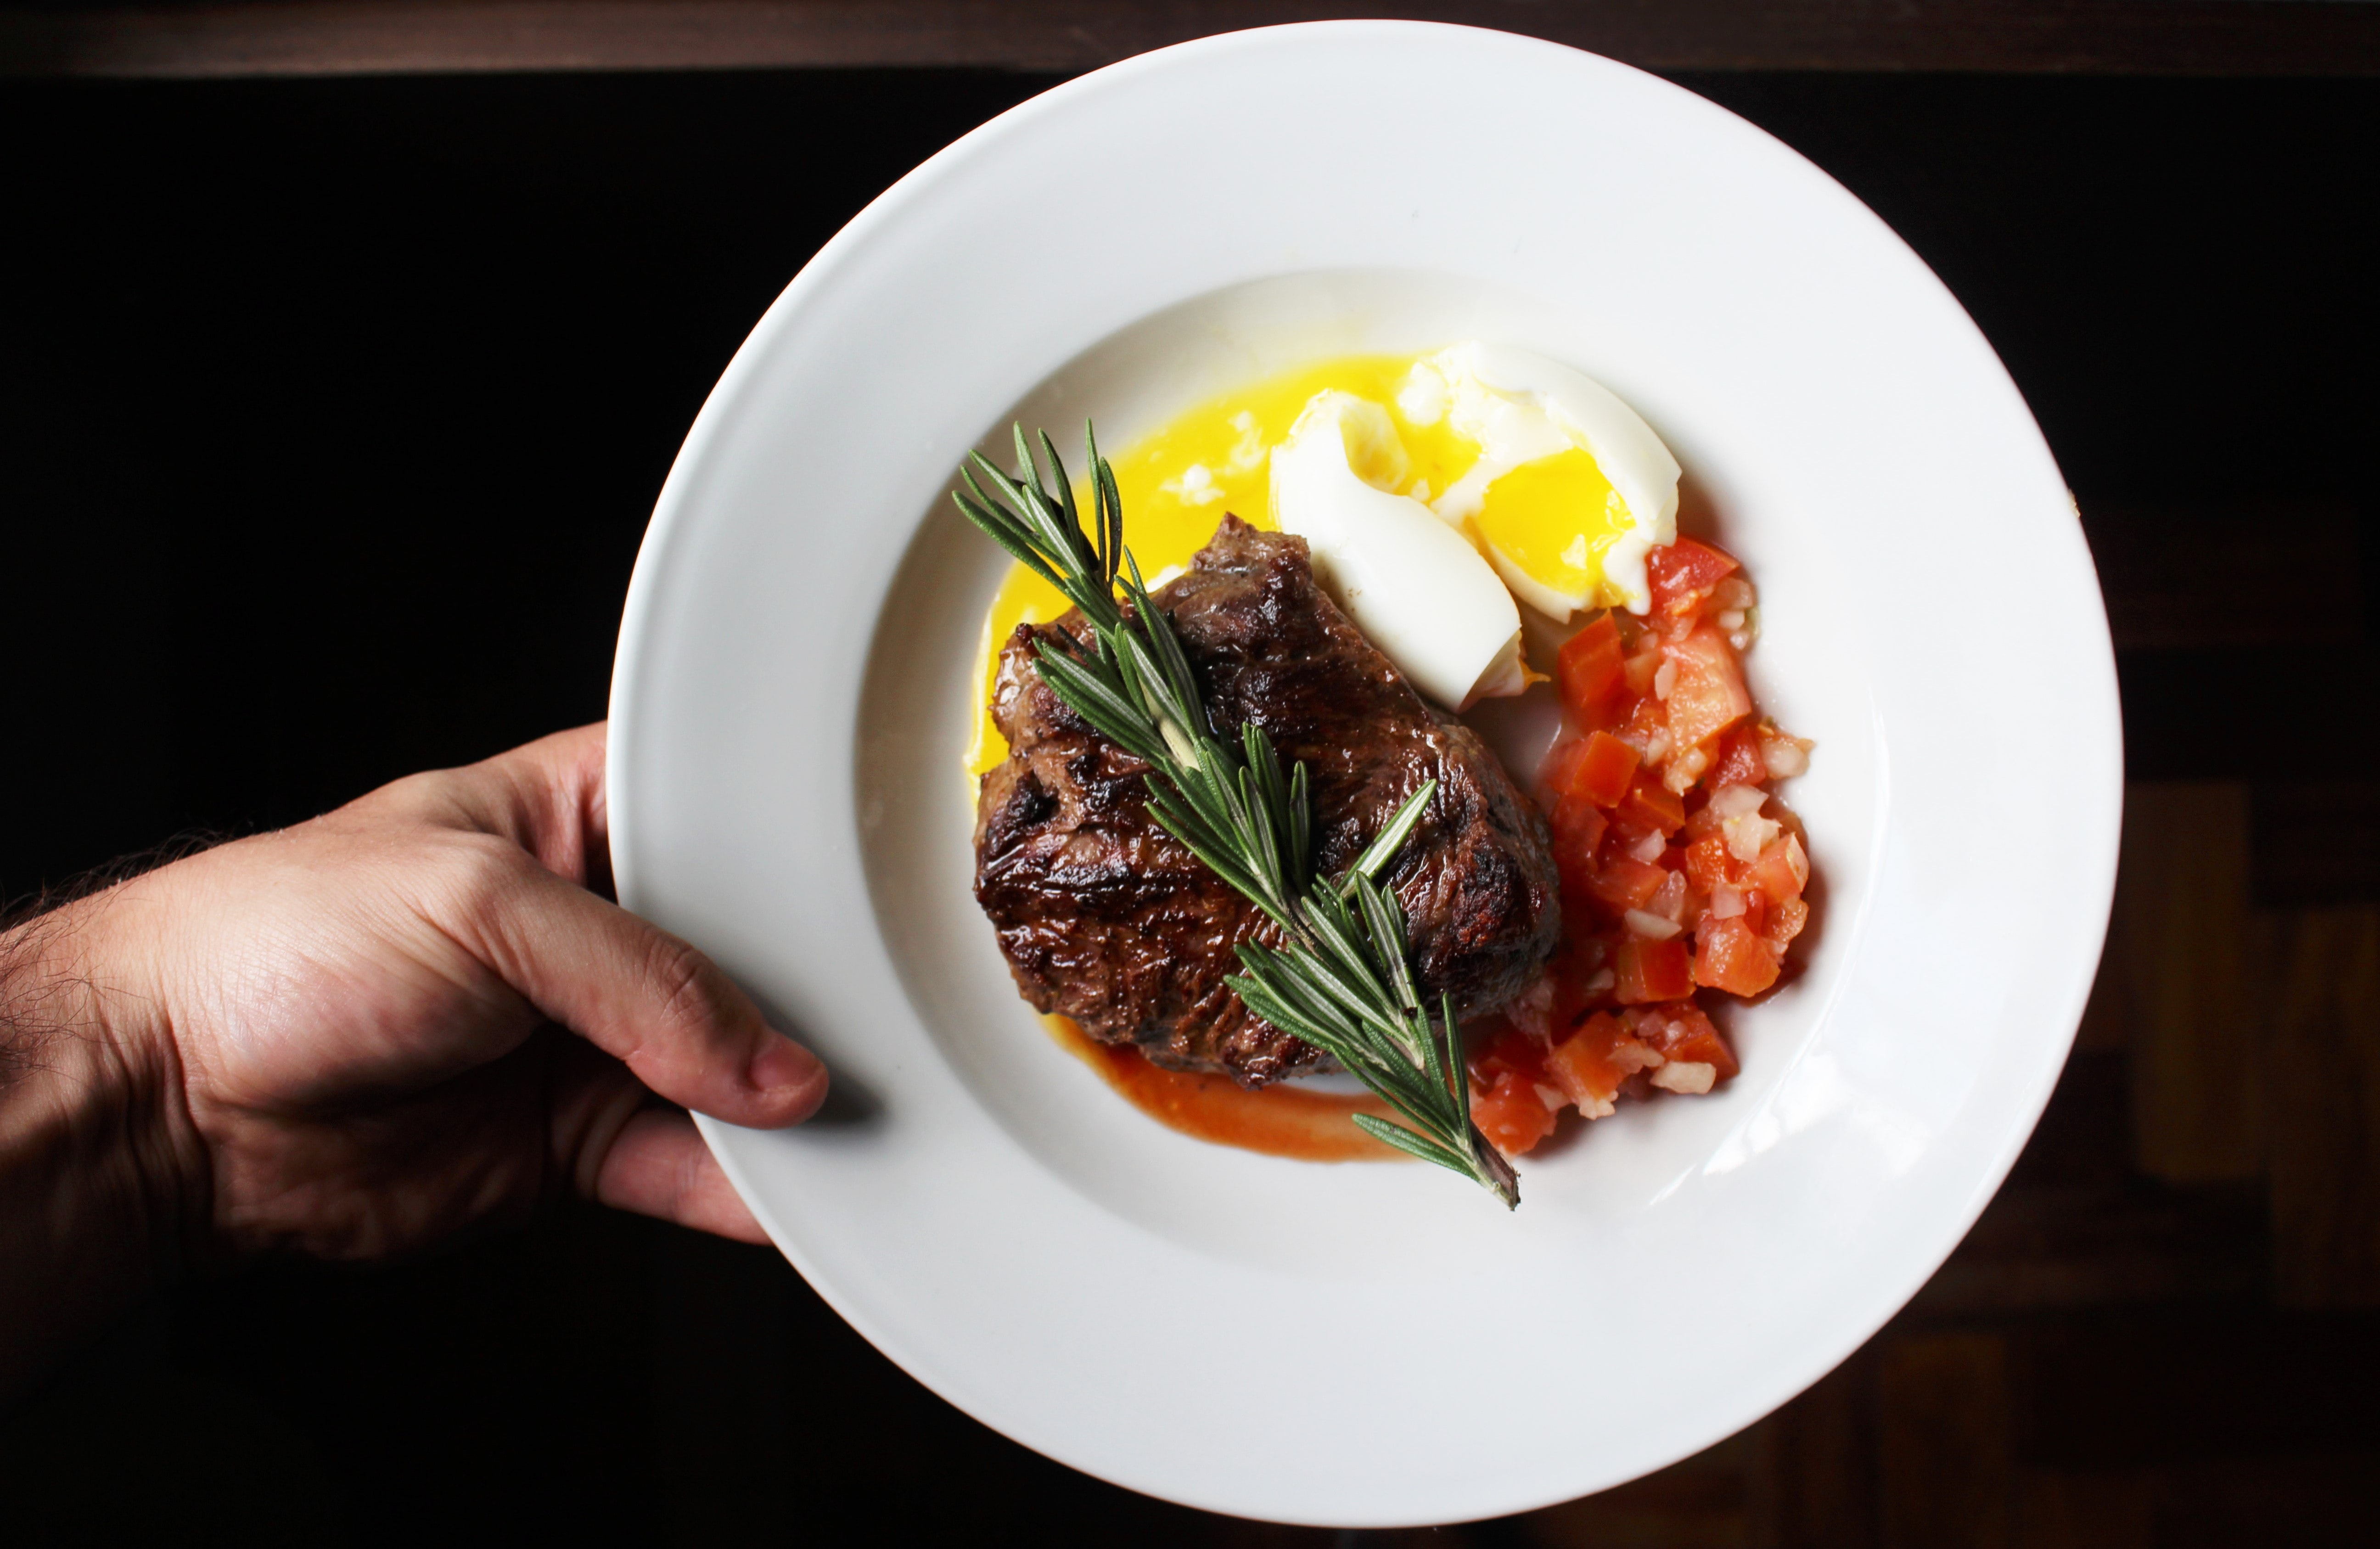 Hand holds a plate of steak, soft boiled egg, and tomatoes